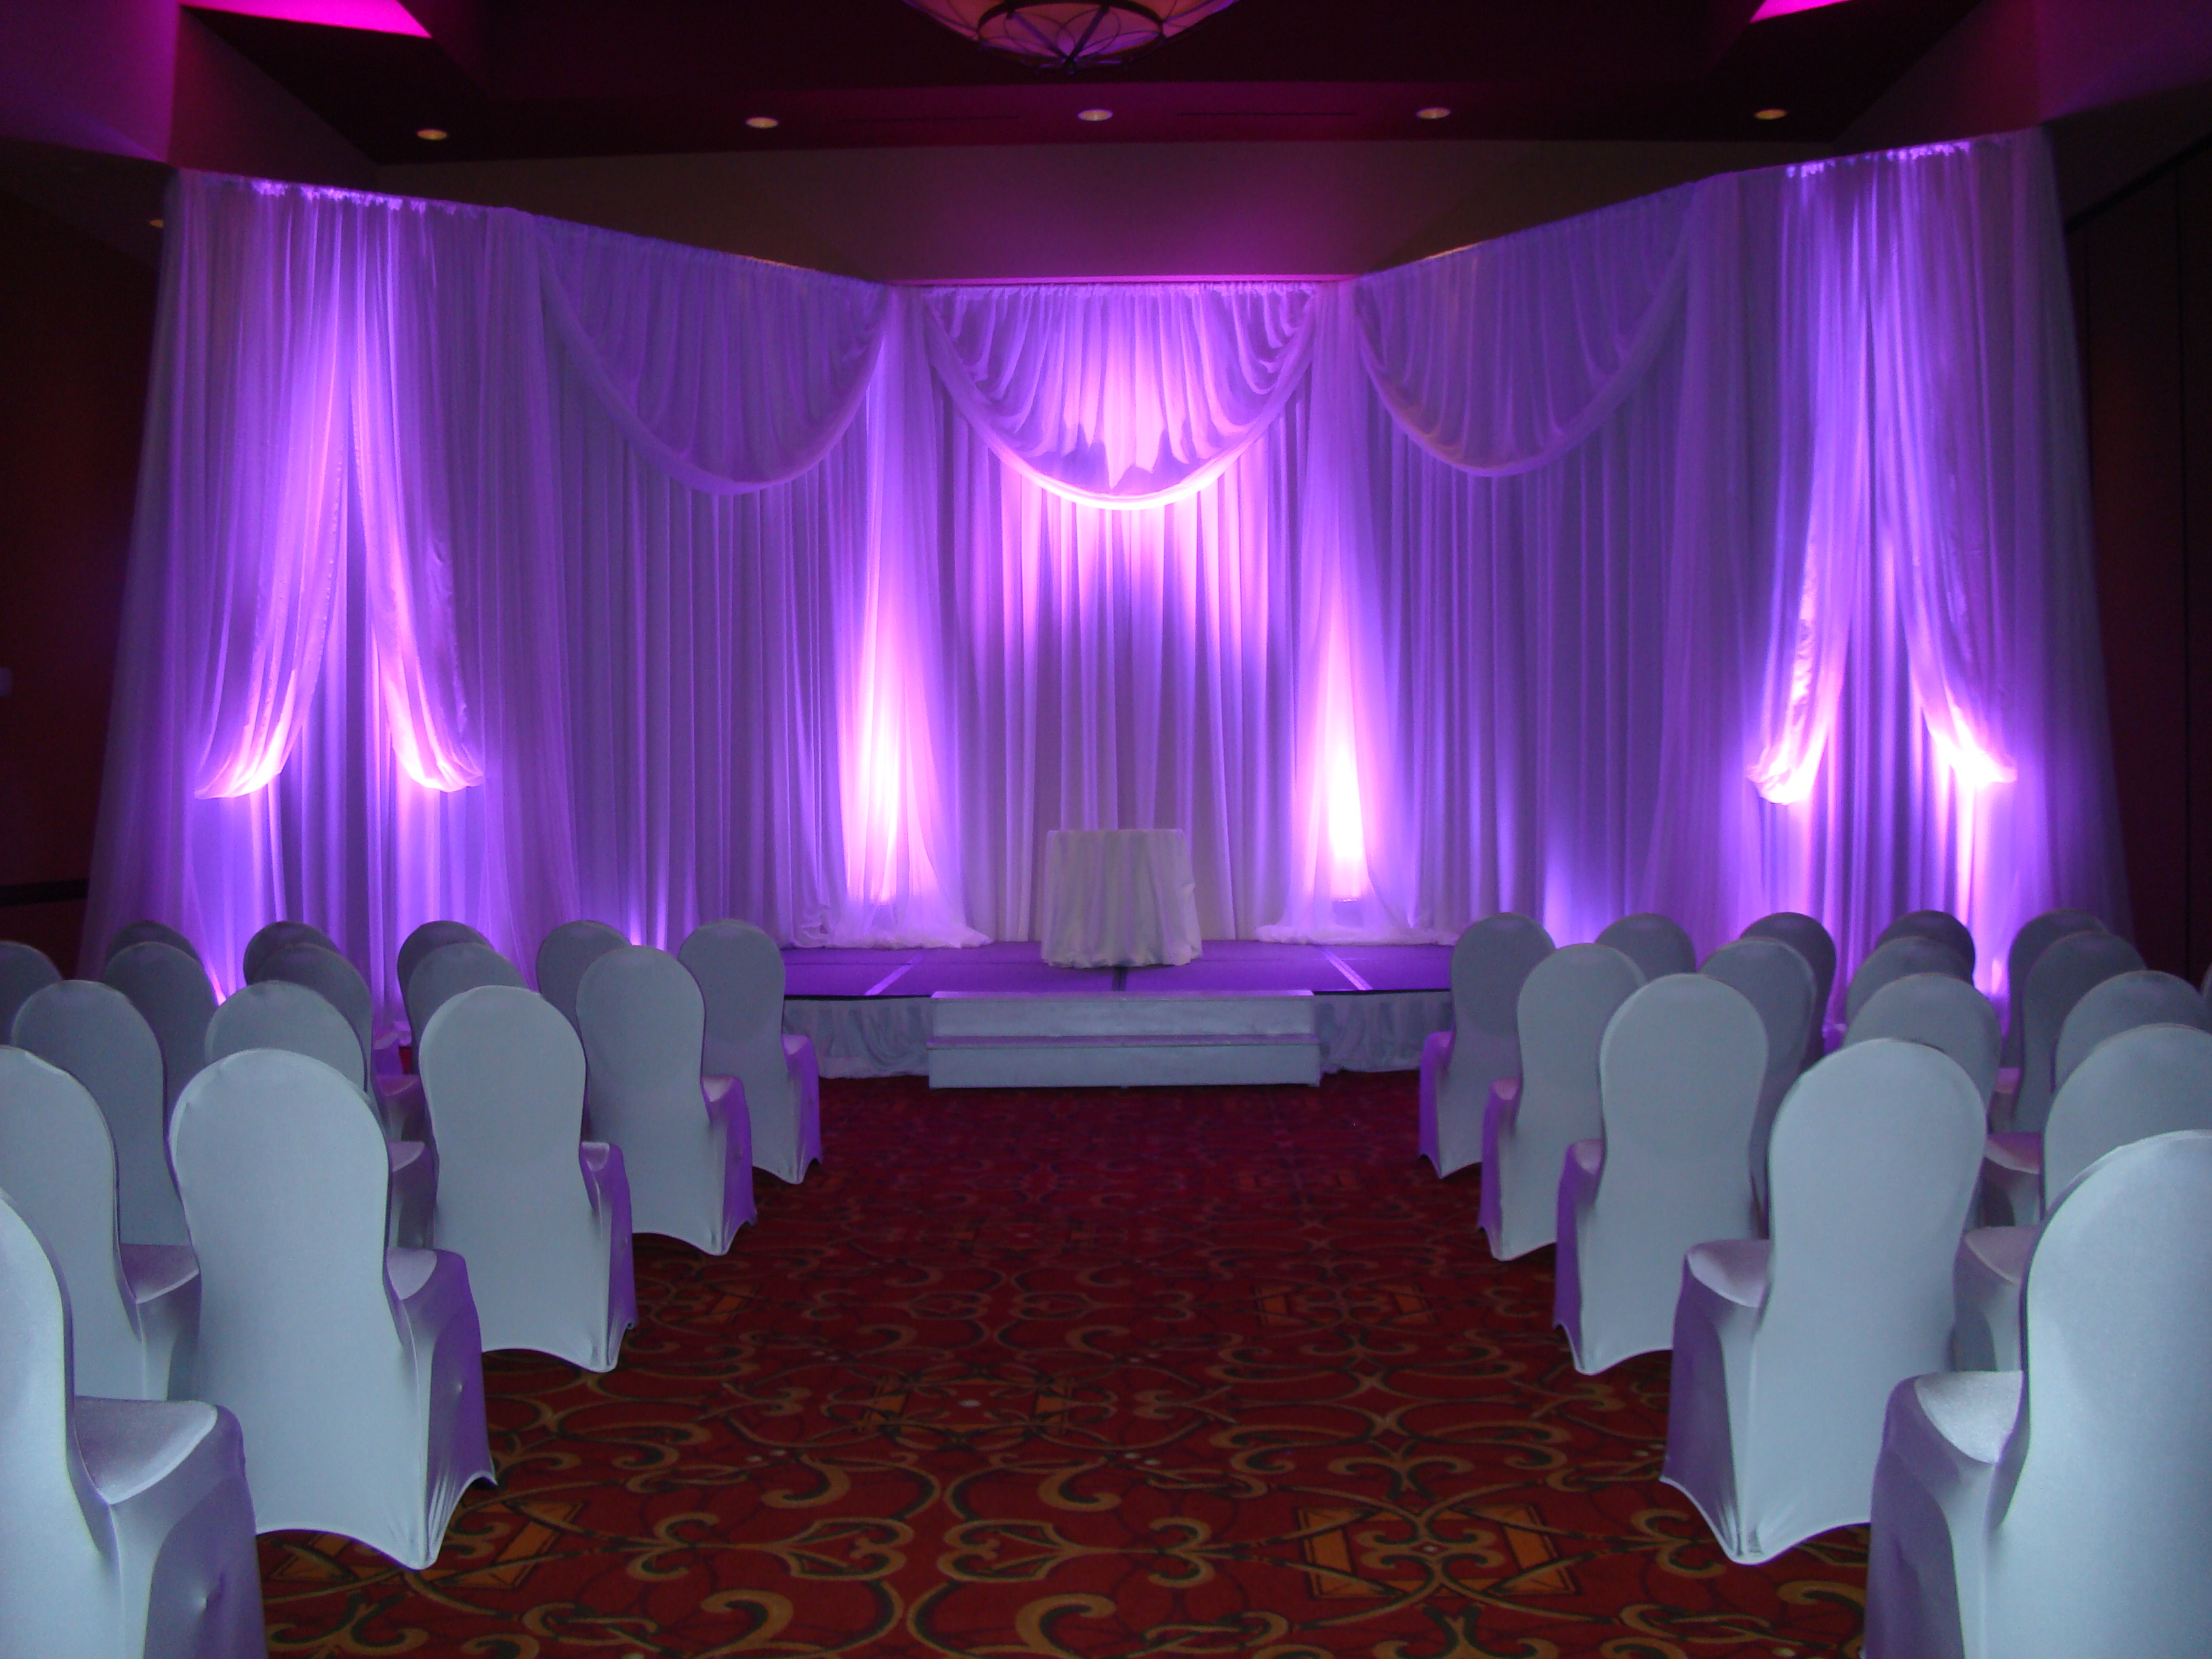 Embassy Suites Murfreesboro bridal showcase backdrops jan 2013019